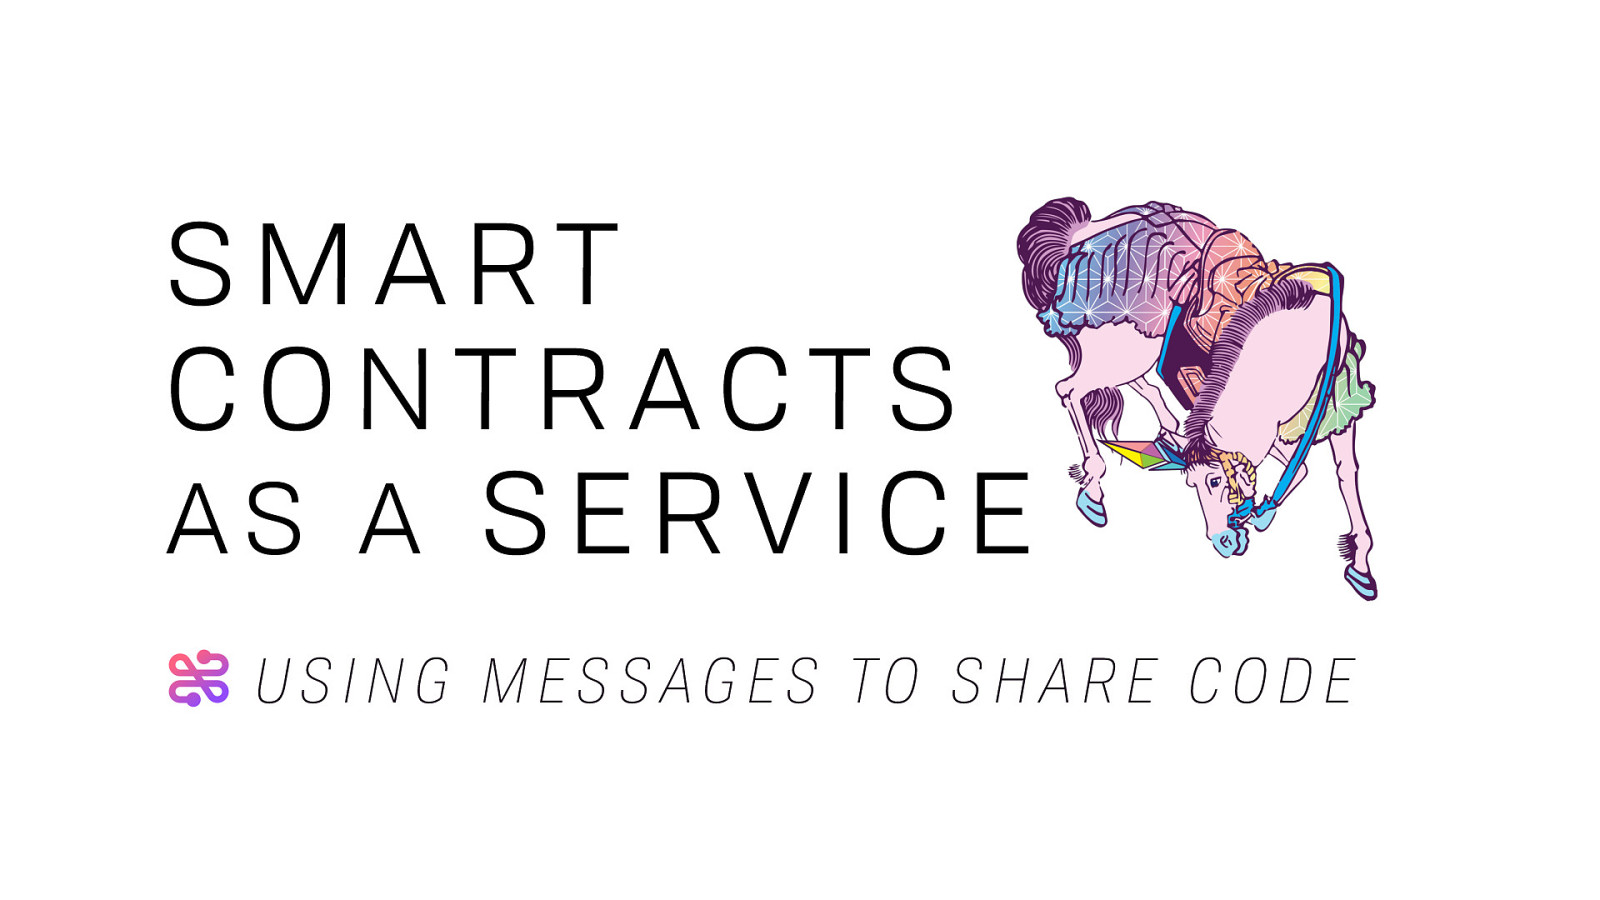 Smart Contract as a Service: Using Messages to Share Contracts